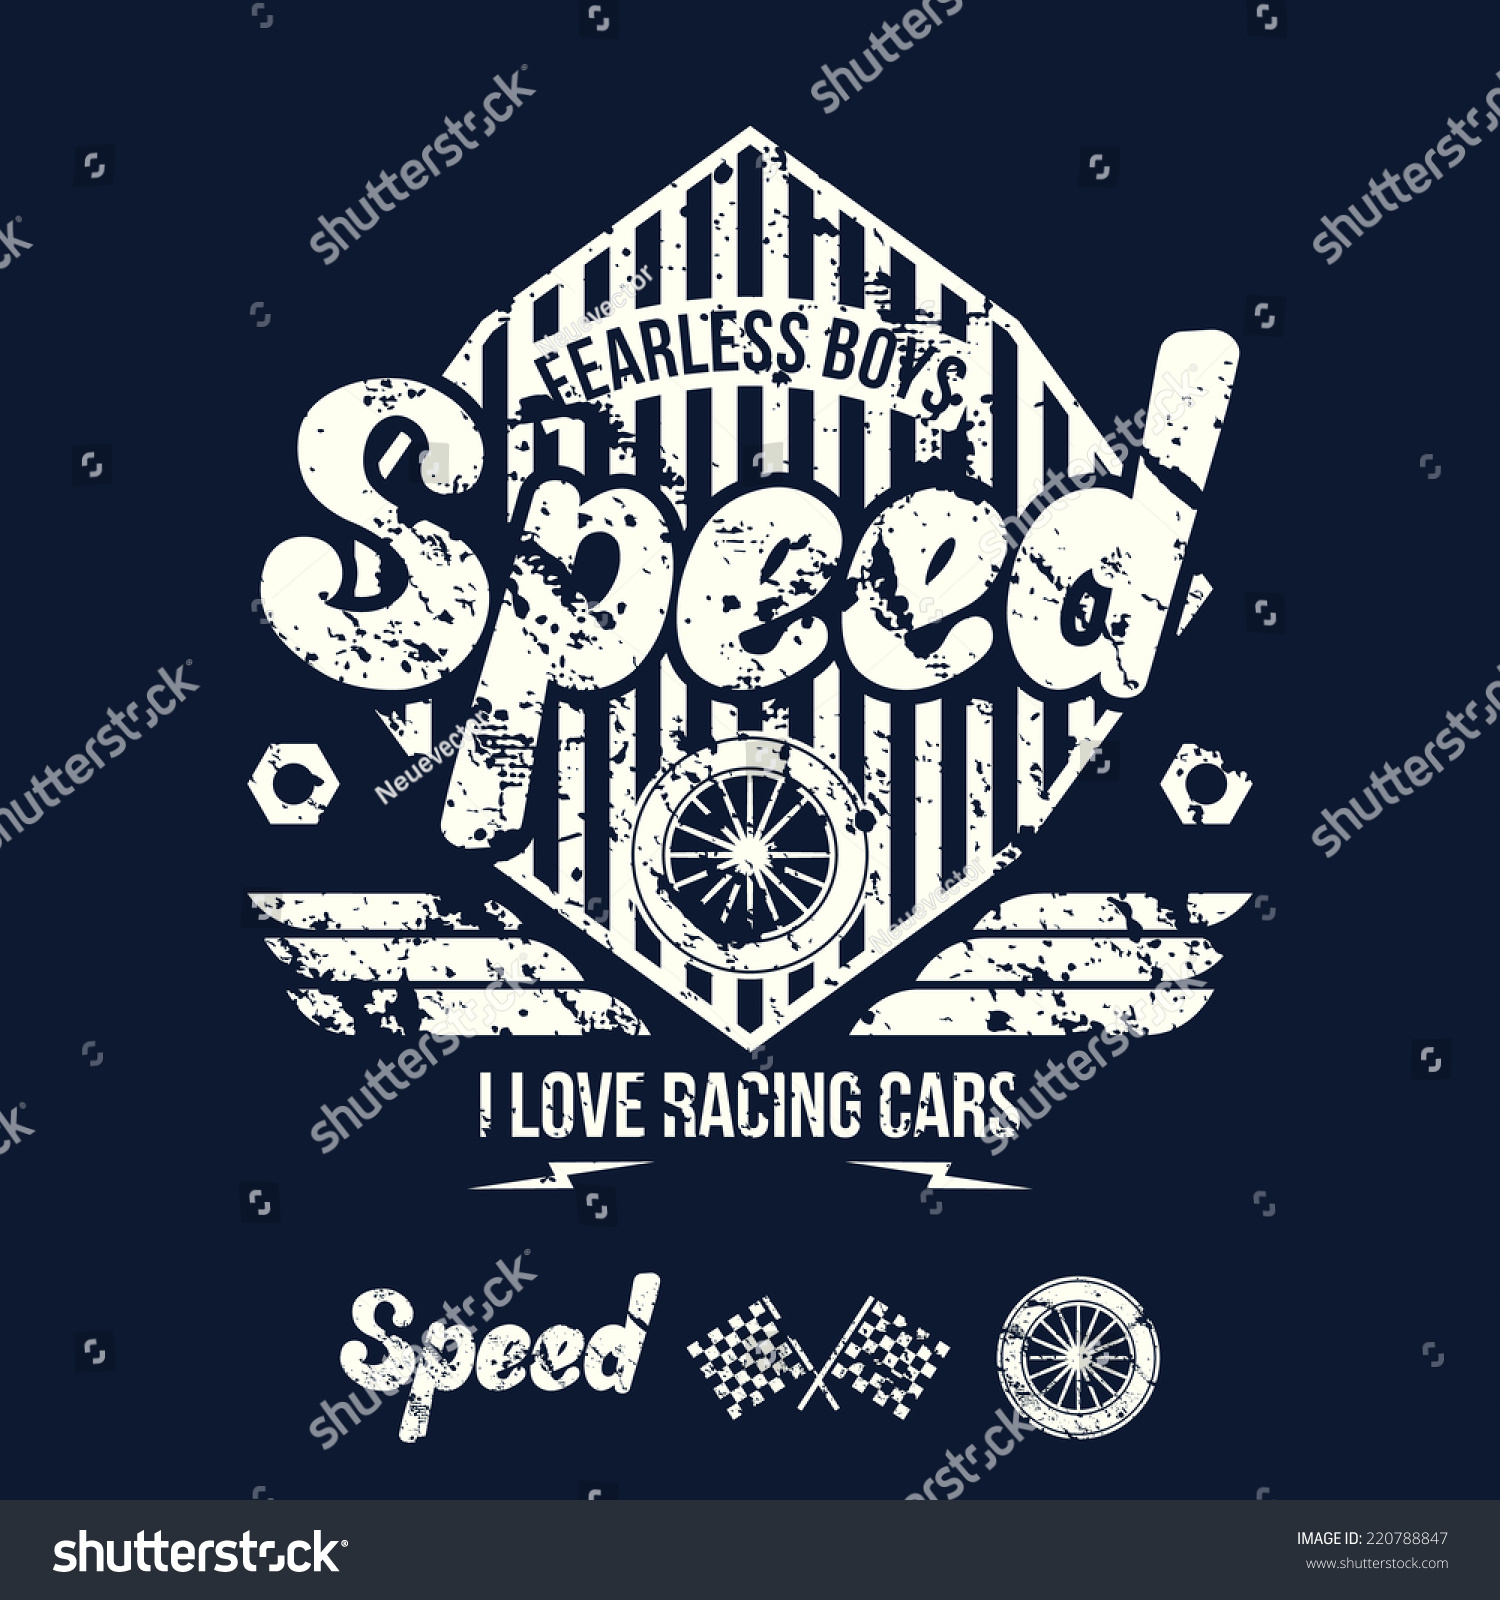 Design car emblem - Emblem Of The Racing Car In Retro Style Graphic Design For T Shirt